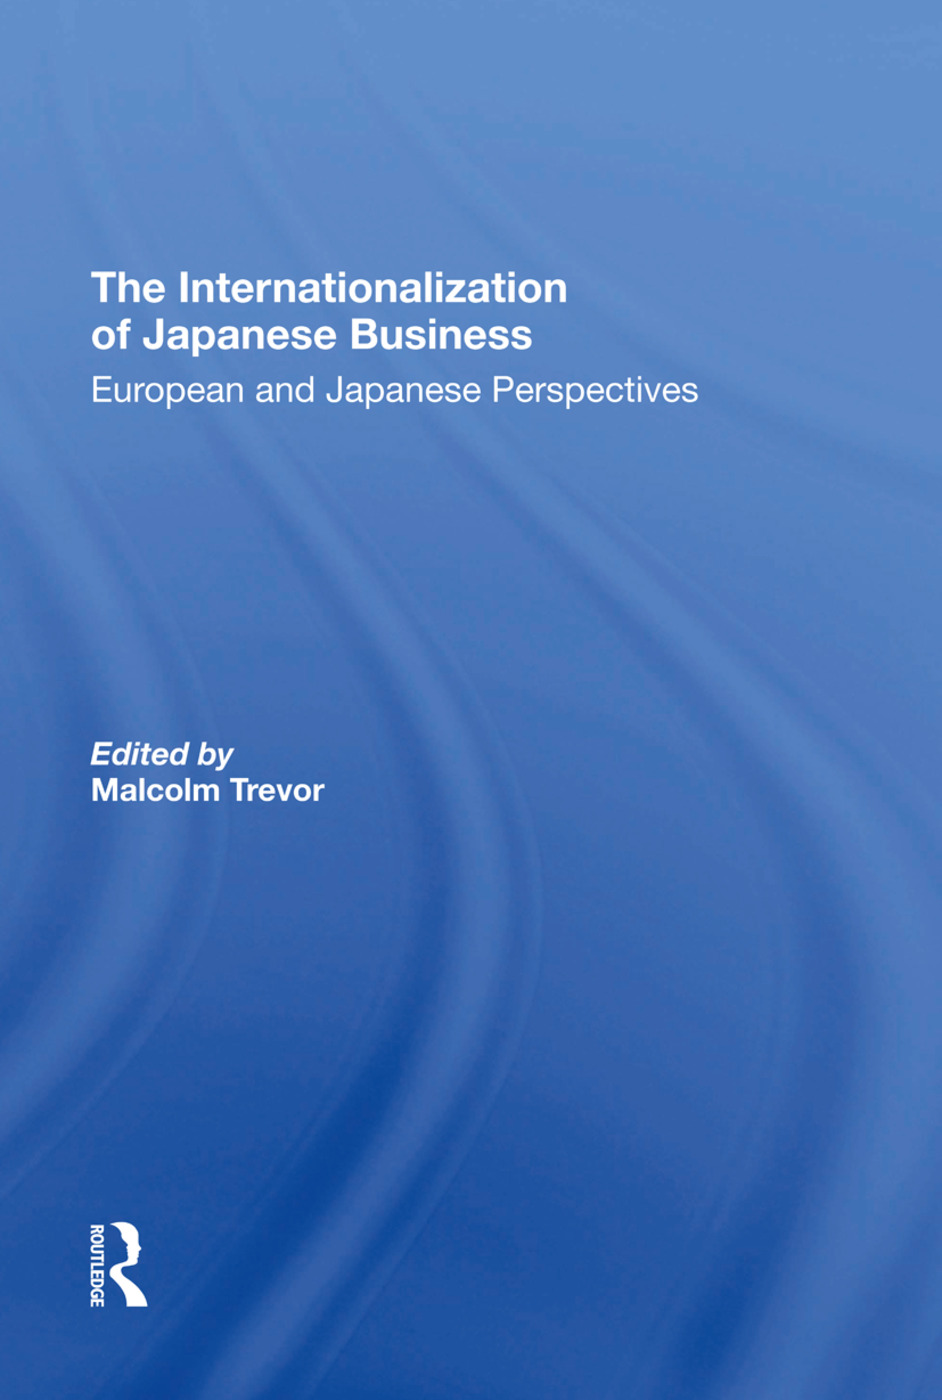 The Internationalization Of Japanese Business: European And Japanese Perspectives book cover